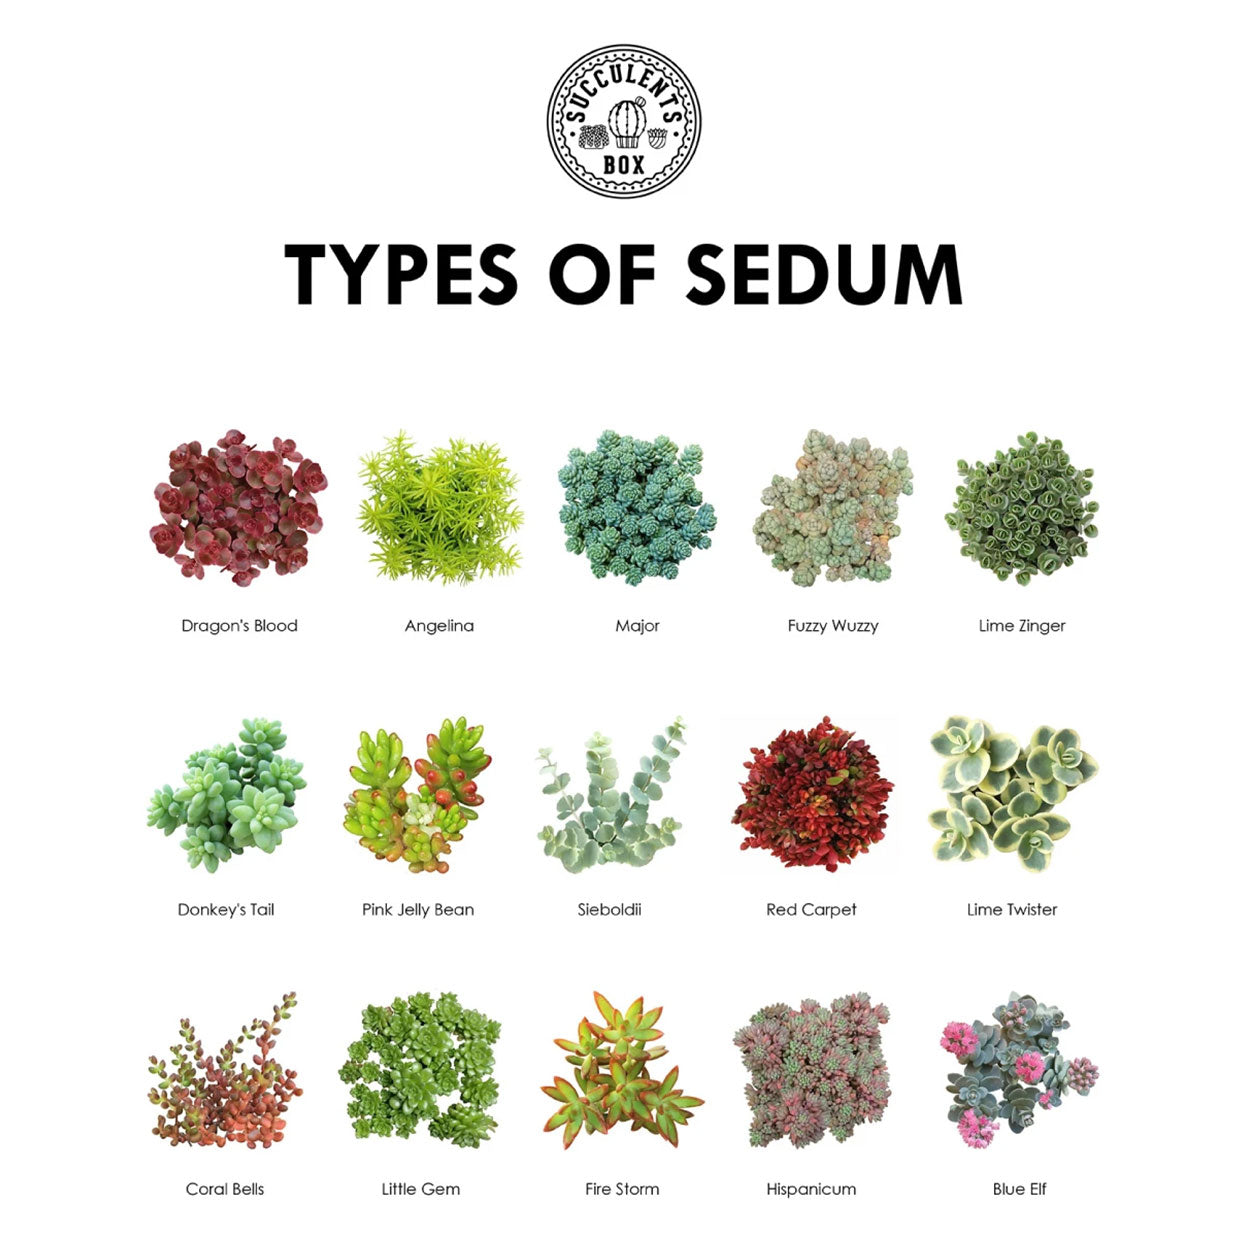 Types of Succulents Printable Art for sale, Printable Cactus Art, Succulents Digital Download, Succulents Home Office Decor, Succulents Gift Ideas, Modern Wall Art Decor, Succulents Printable Poster, printable art cacti download home decor, Types of Sedum Succulents for sale